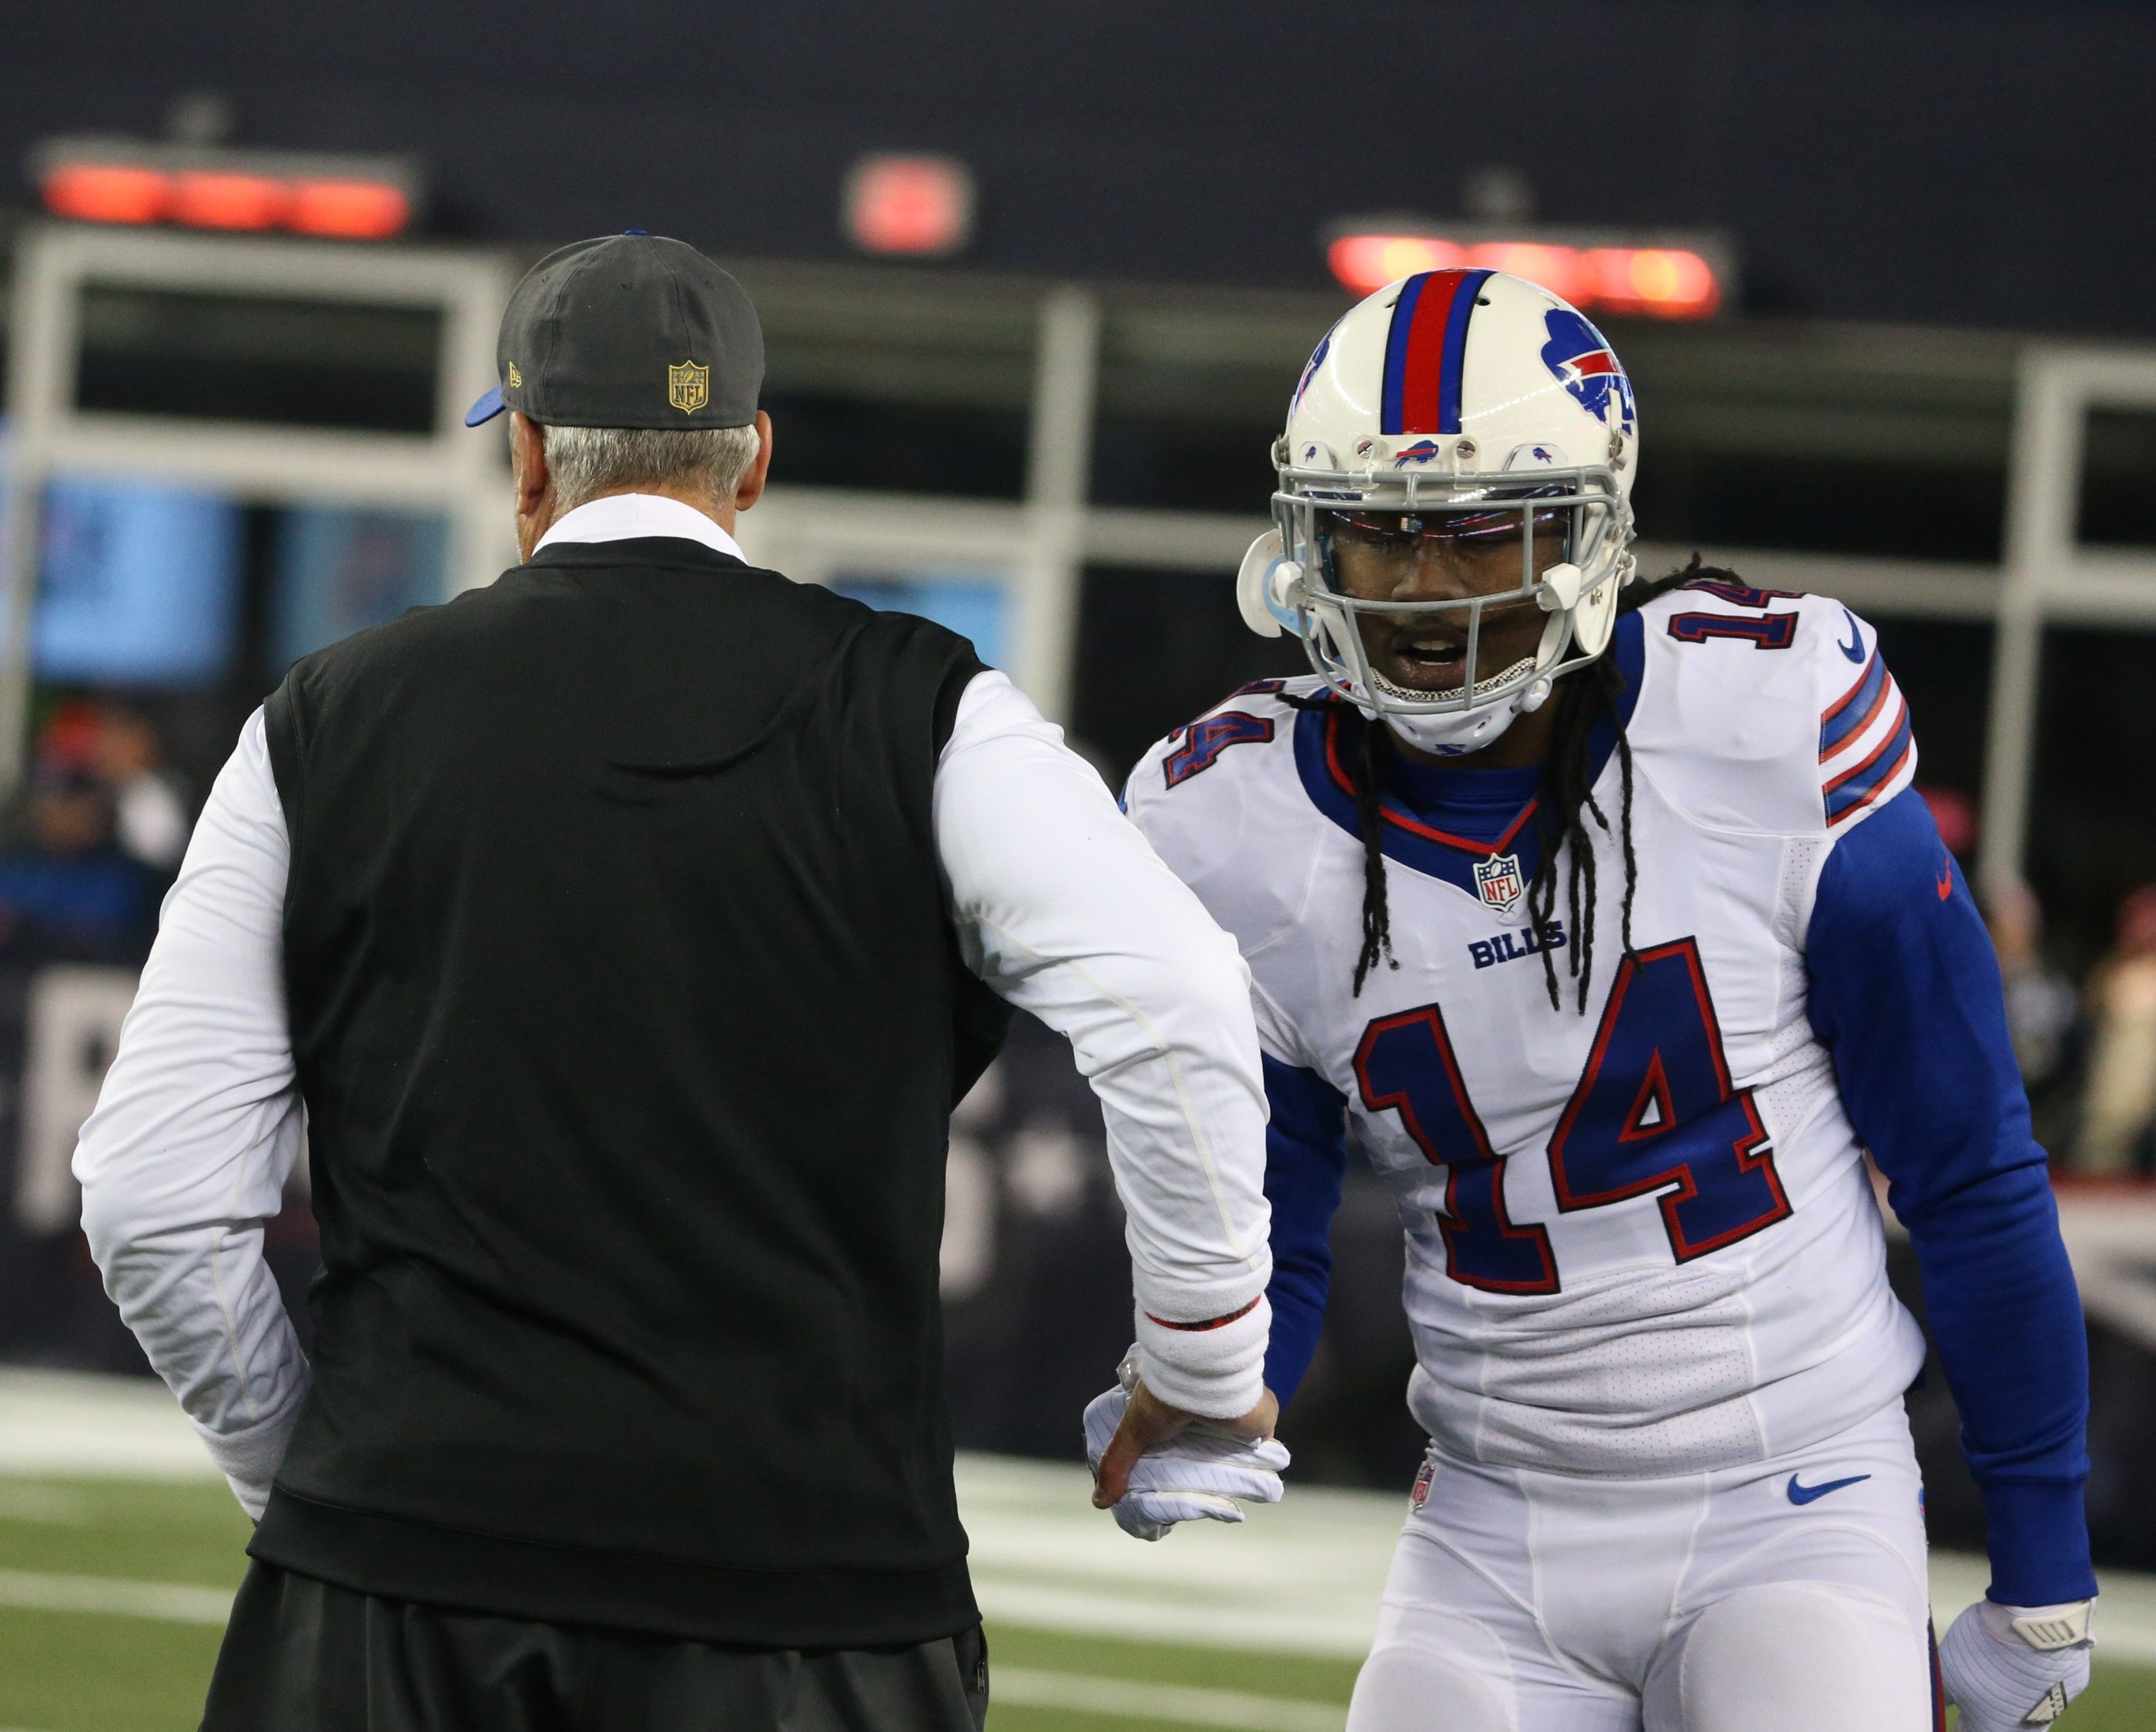 Bills coach Rex Ryan would like to see the ball thrown in the direction of wide receiver Sammy Watkins more often in the future.